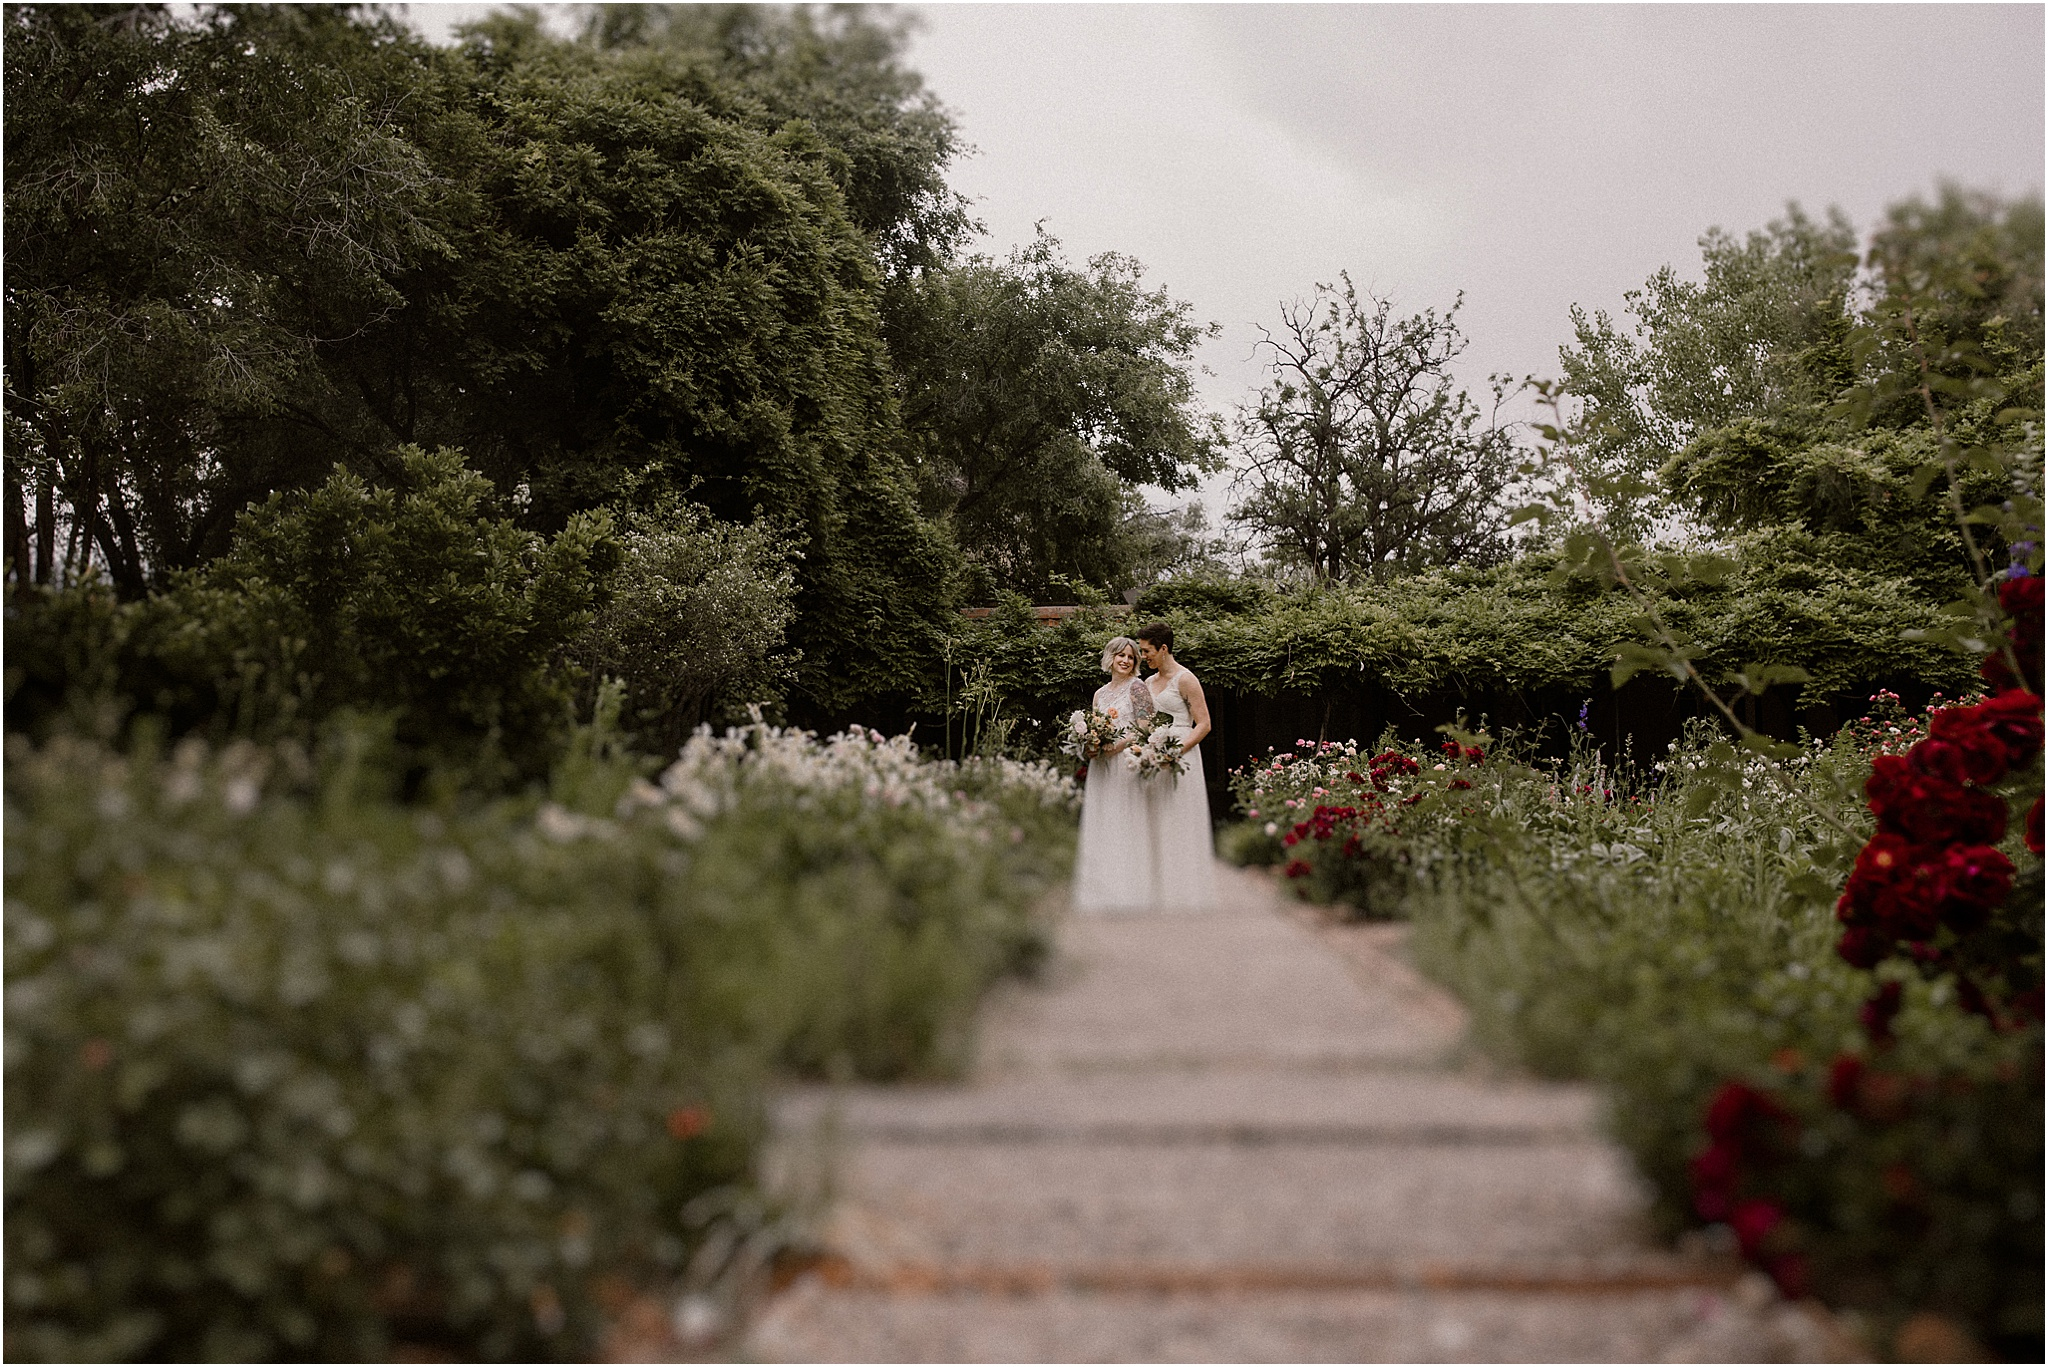 Kelly_Lisa_Los Poblanos_Wedding_Blue Rose Photography52